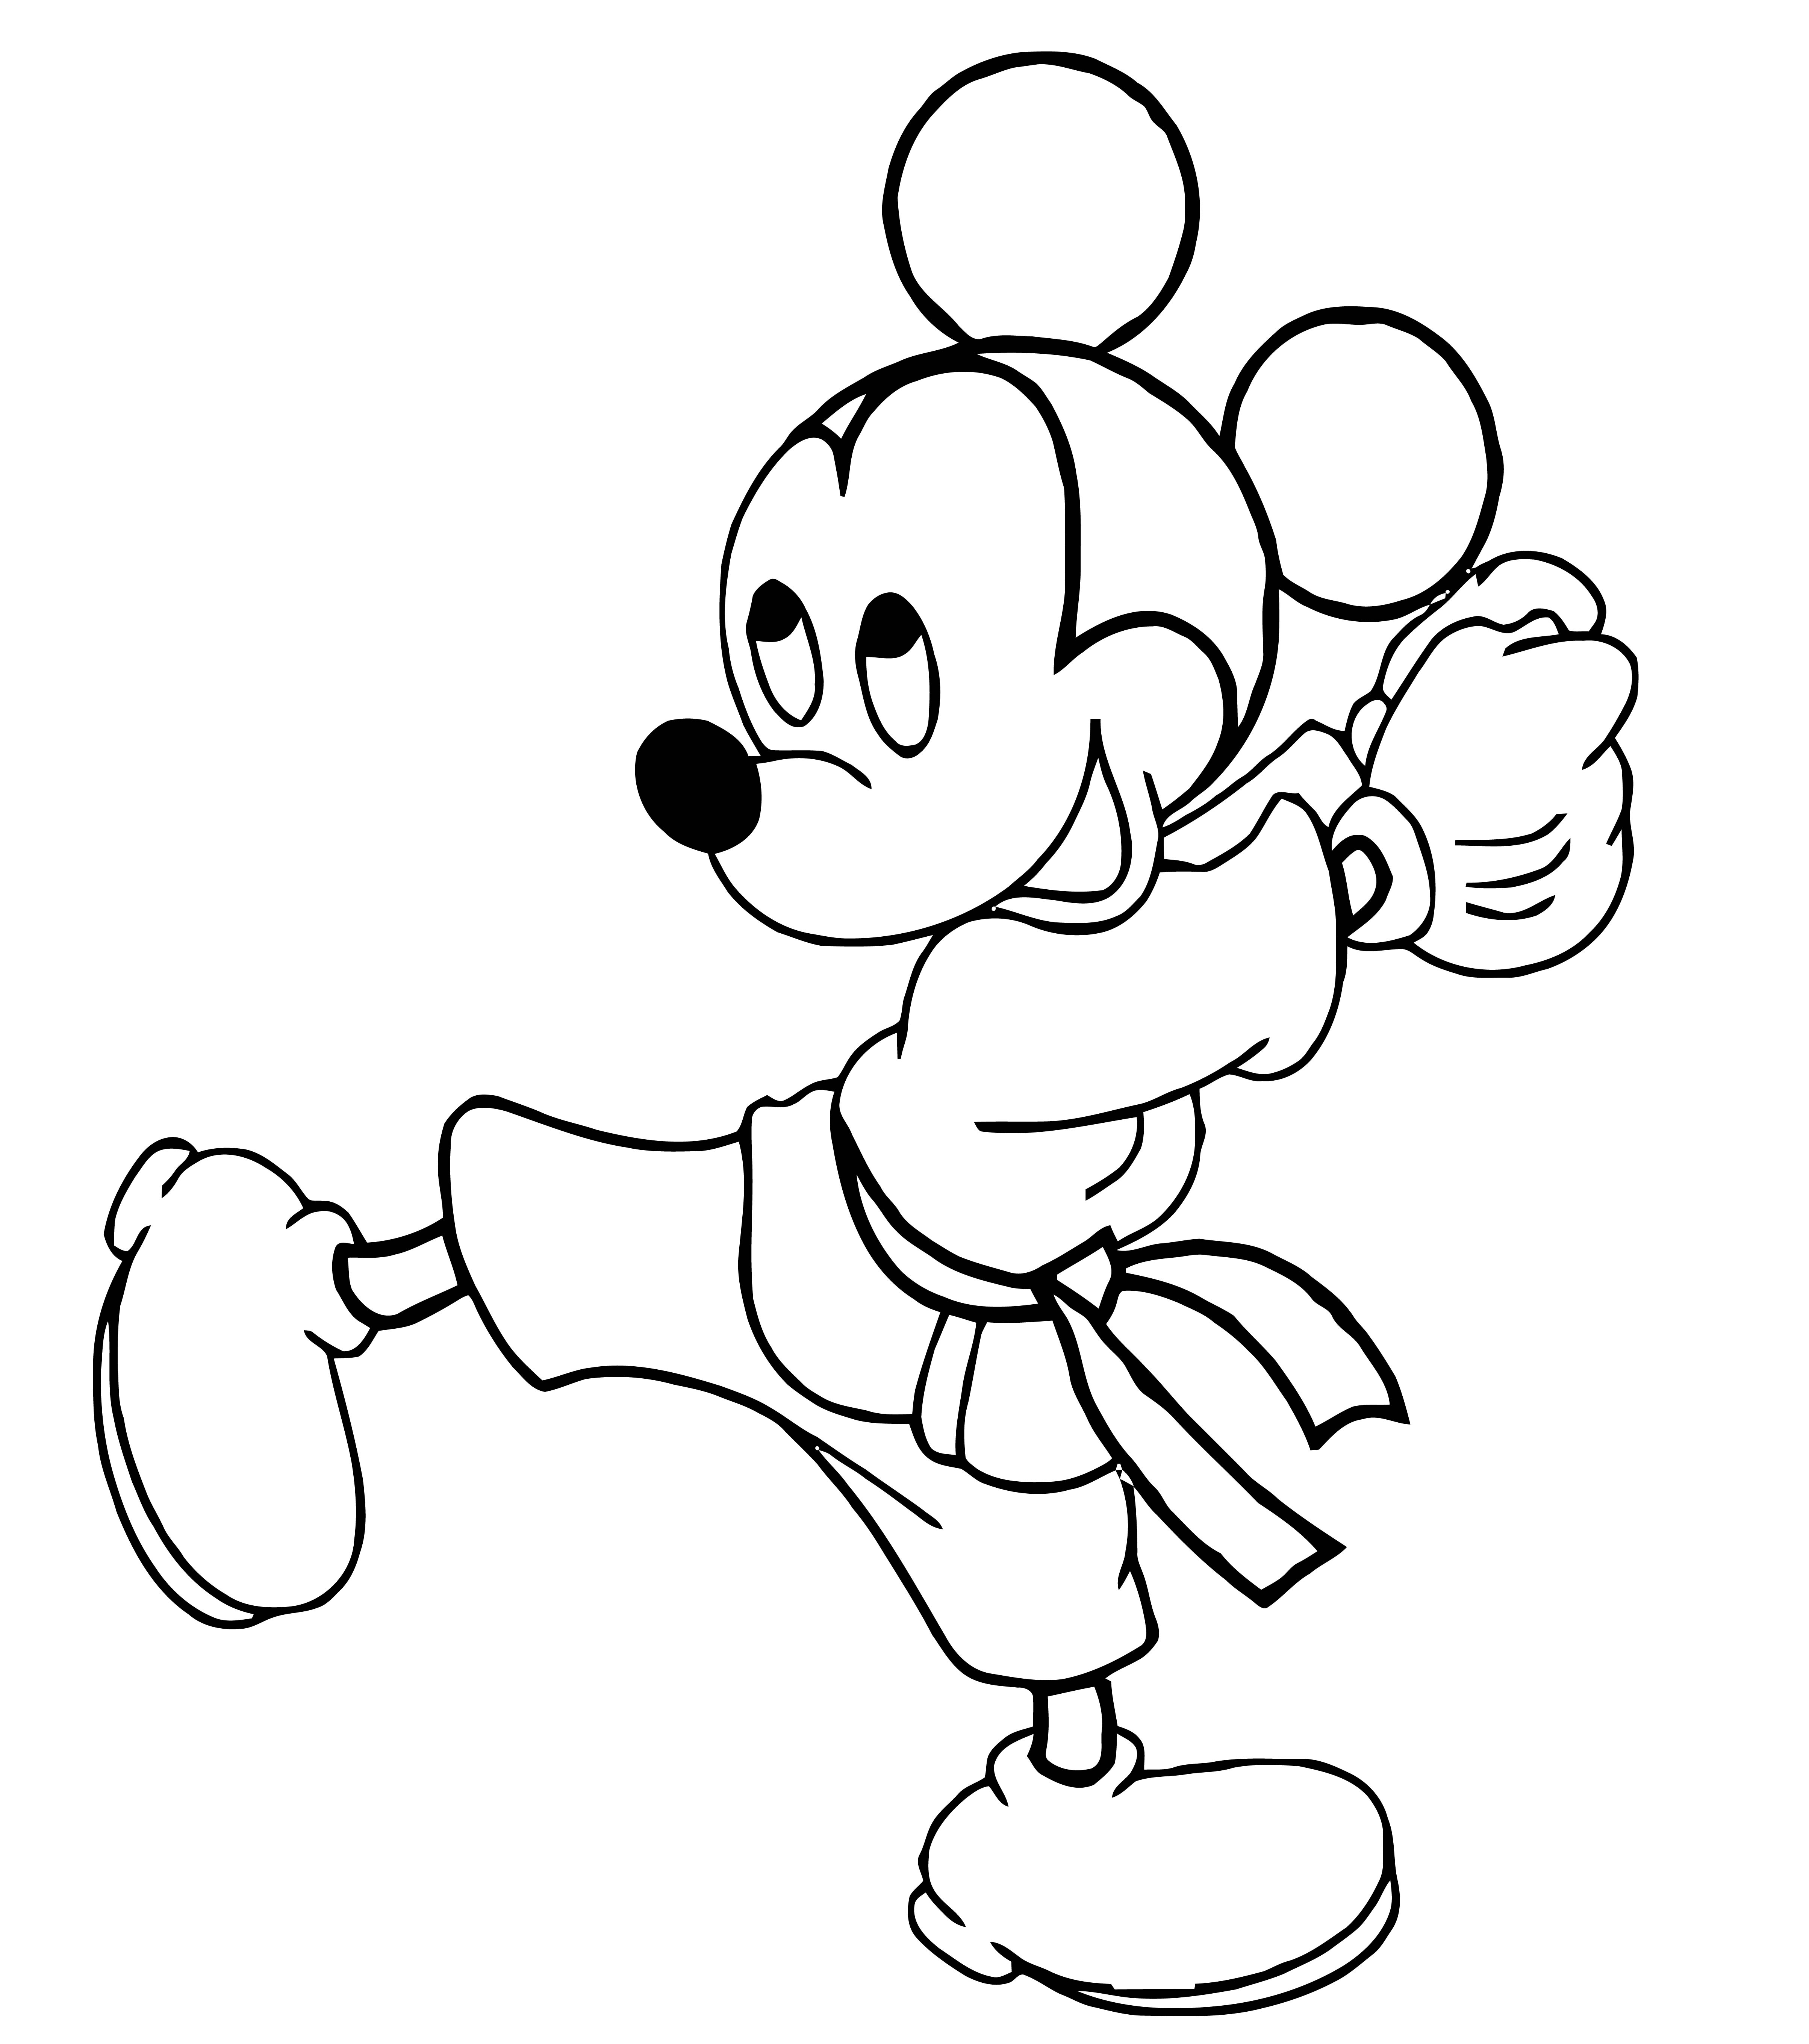 Mickey Mouse Cartoon Coloring Page Wecoloringpage 066